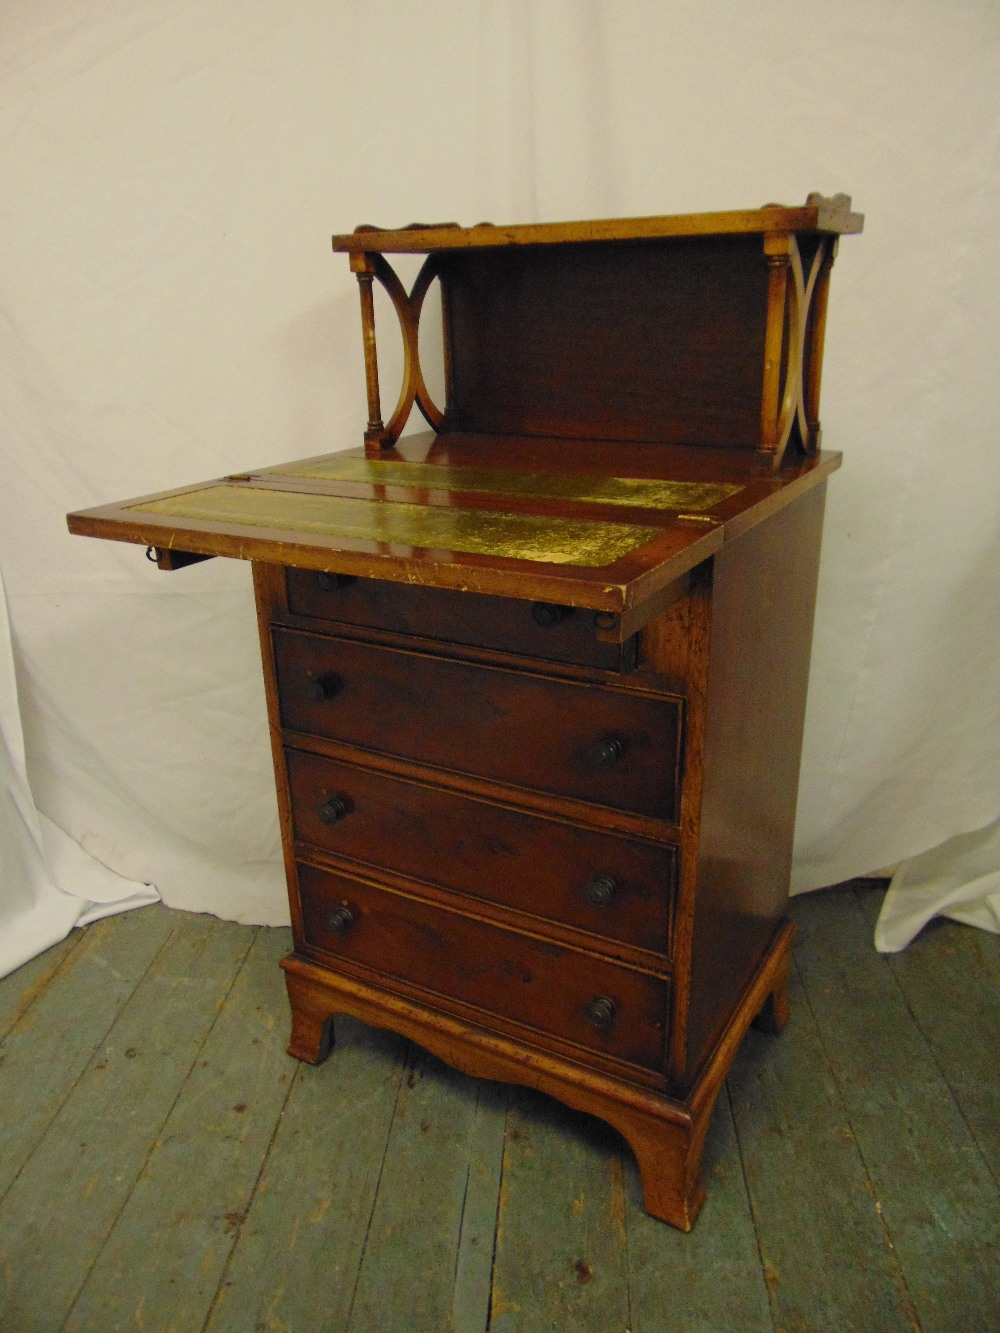 Lot 1 - An Edwardian rectangular desk with four drawers, hinged front and gallery shelf